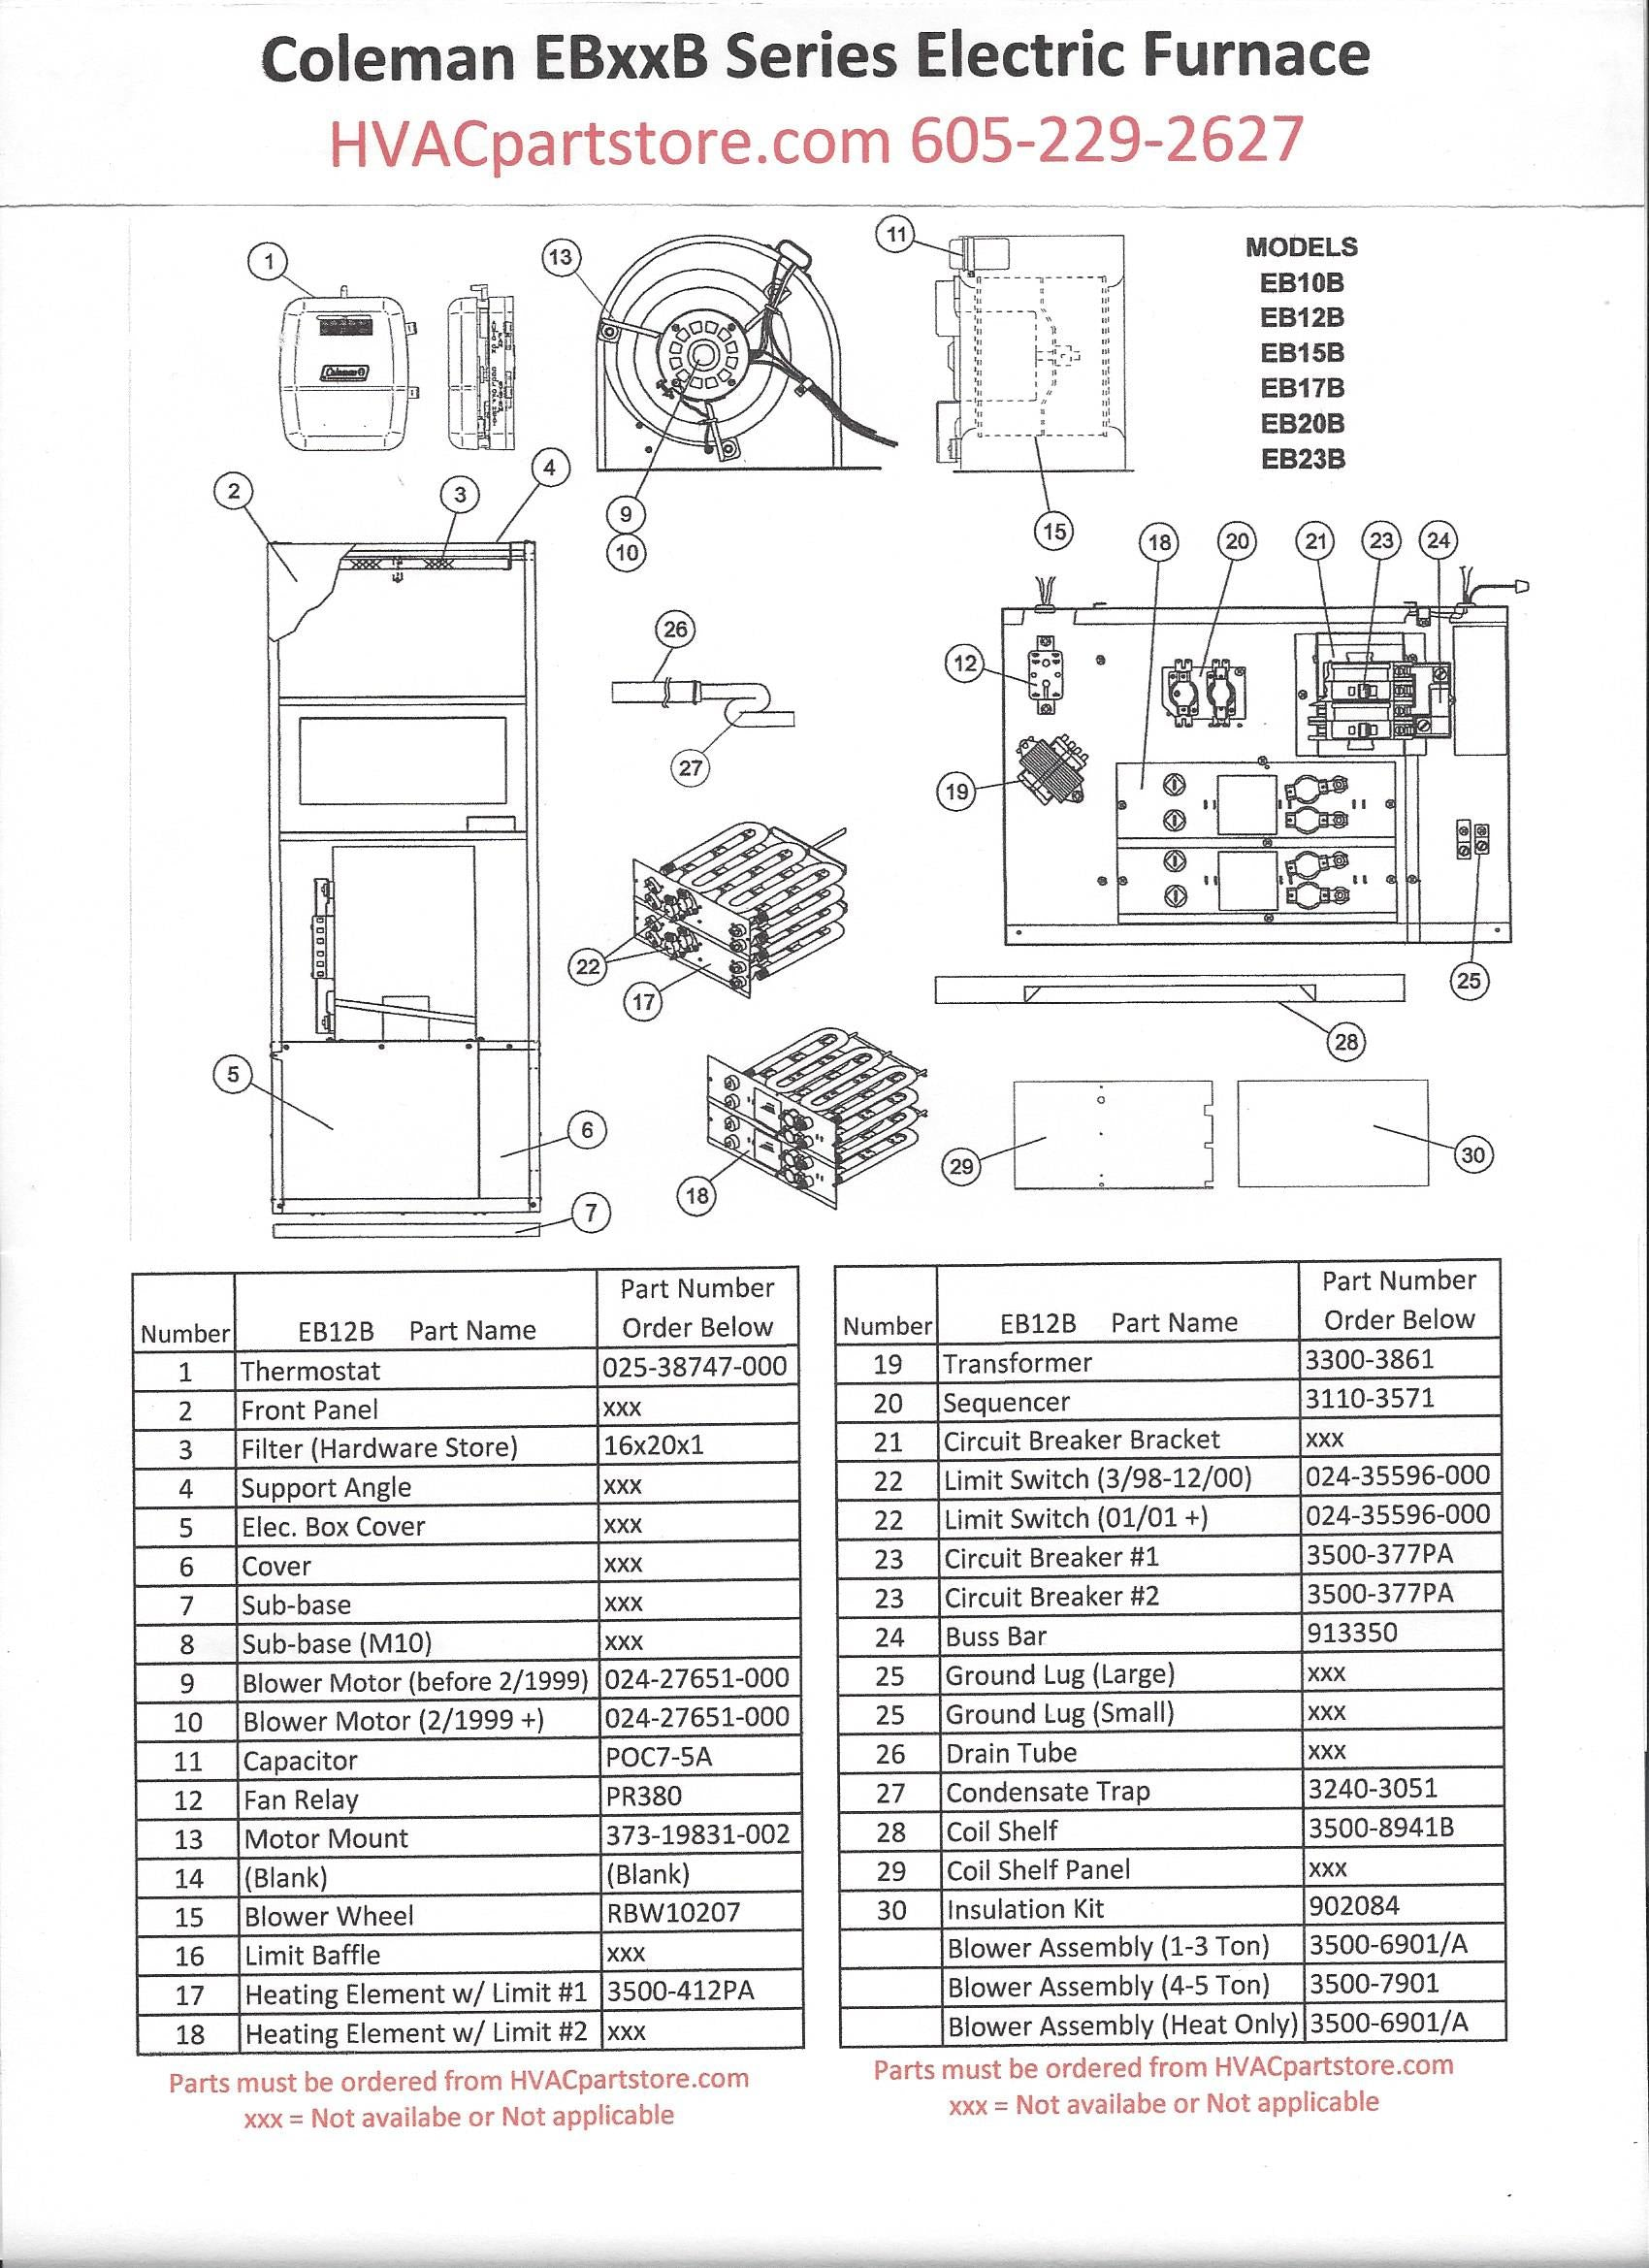 relay pr380 schematic wiring diagram relay pr380 schematic wiring diagram wiring library  relay pr380 schematic wiring diagram